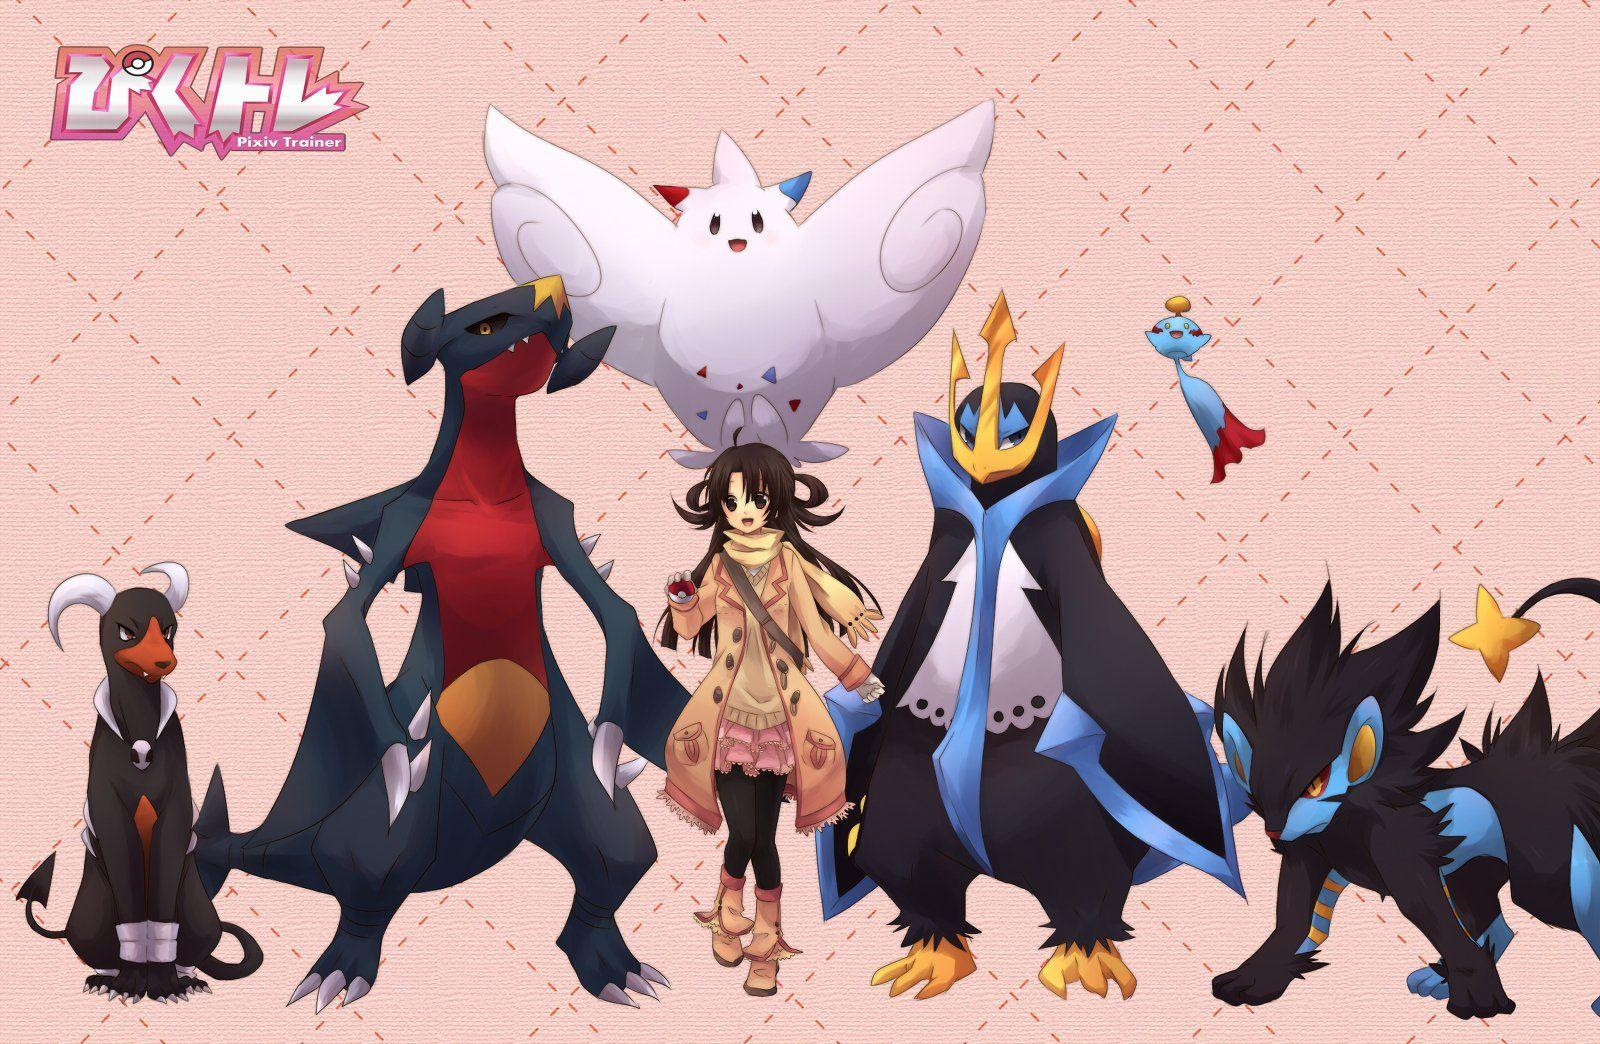 Pokemon brown eyes brown hair chimecho empoleon garchomp houndoom